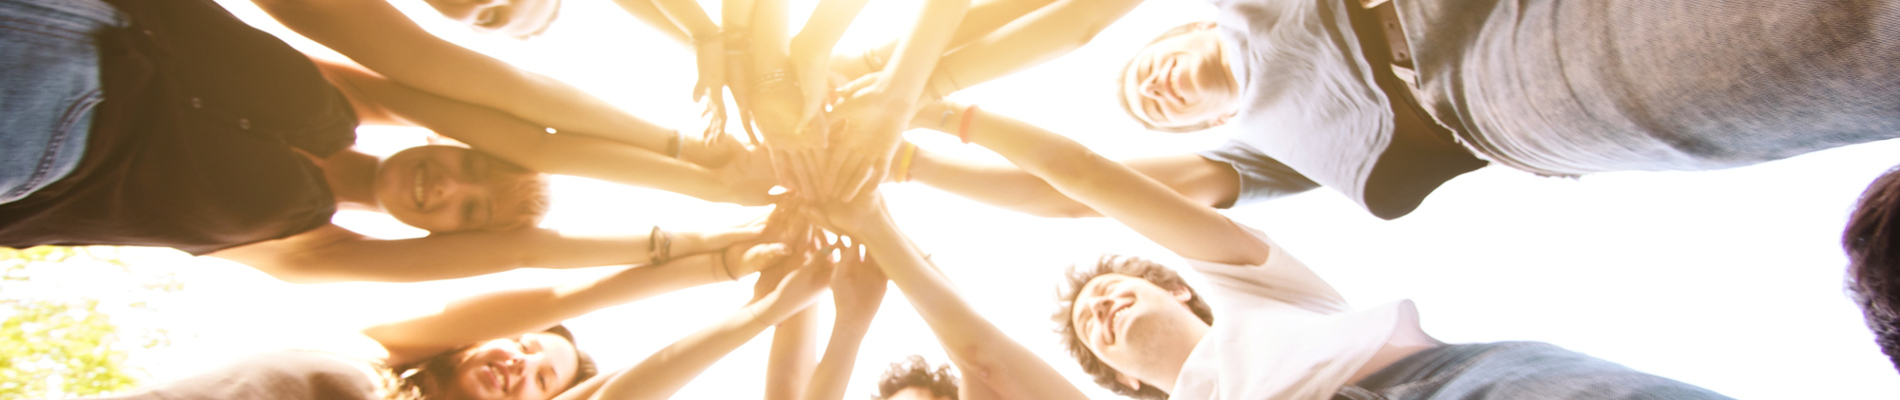 Group of people standing in a circle with their hands intertwined